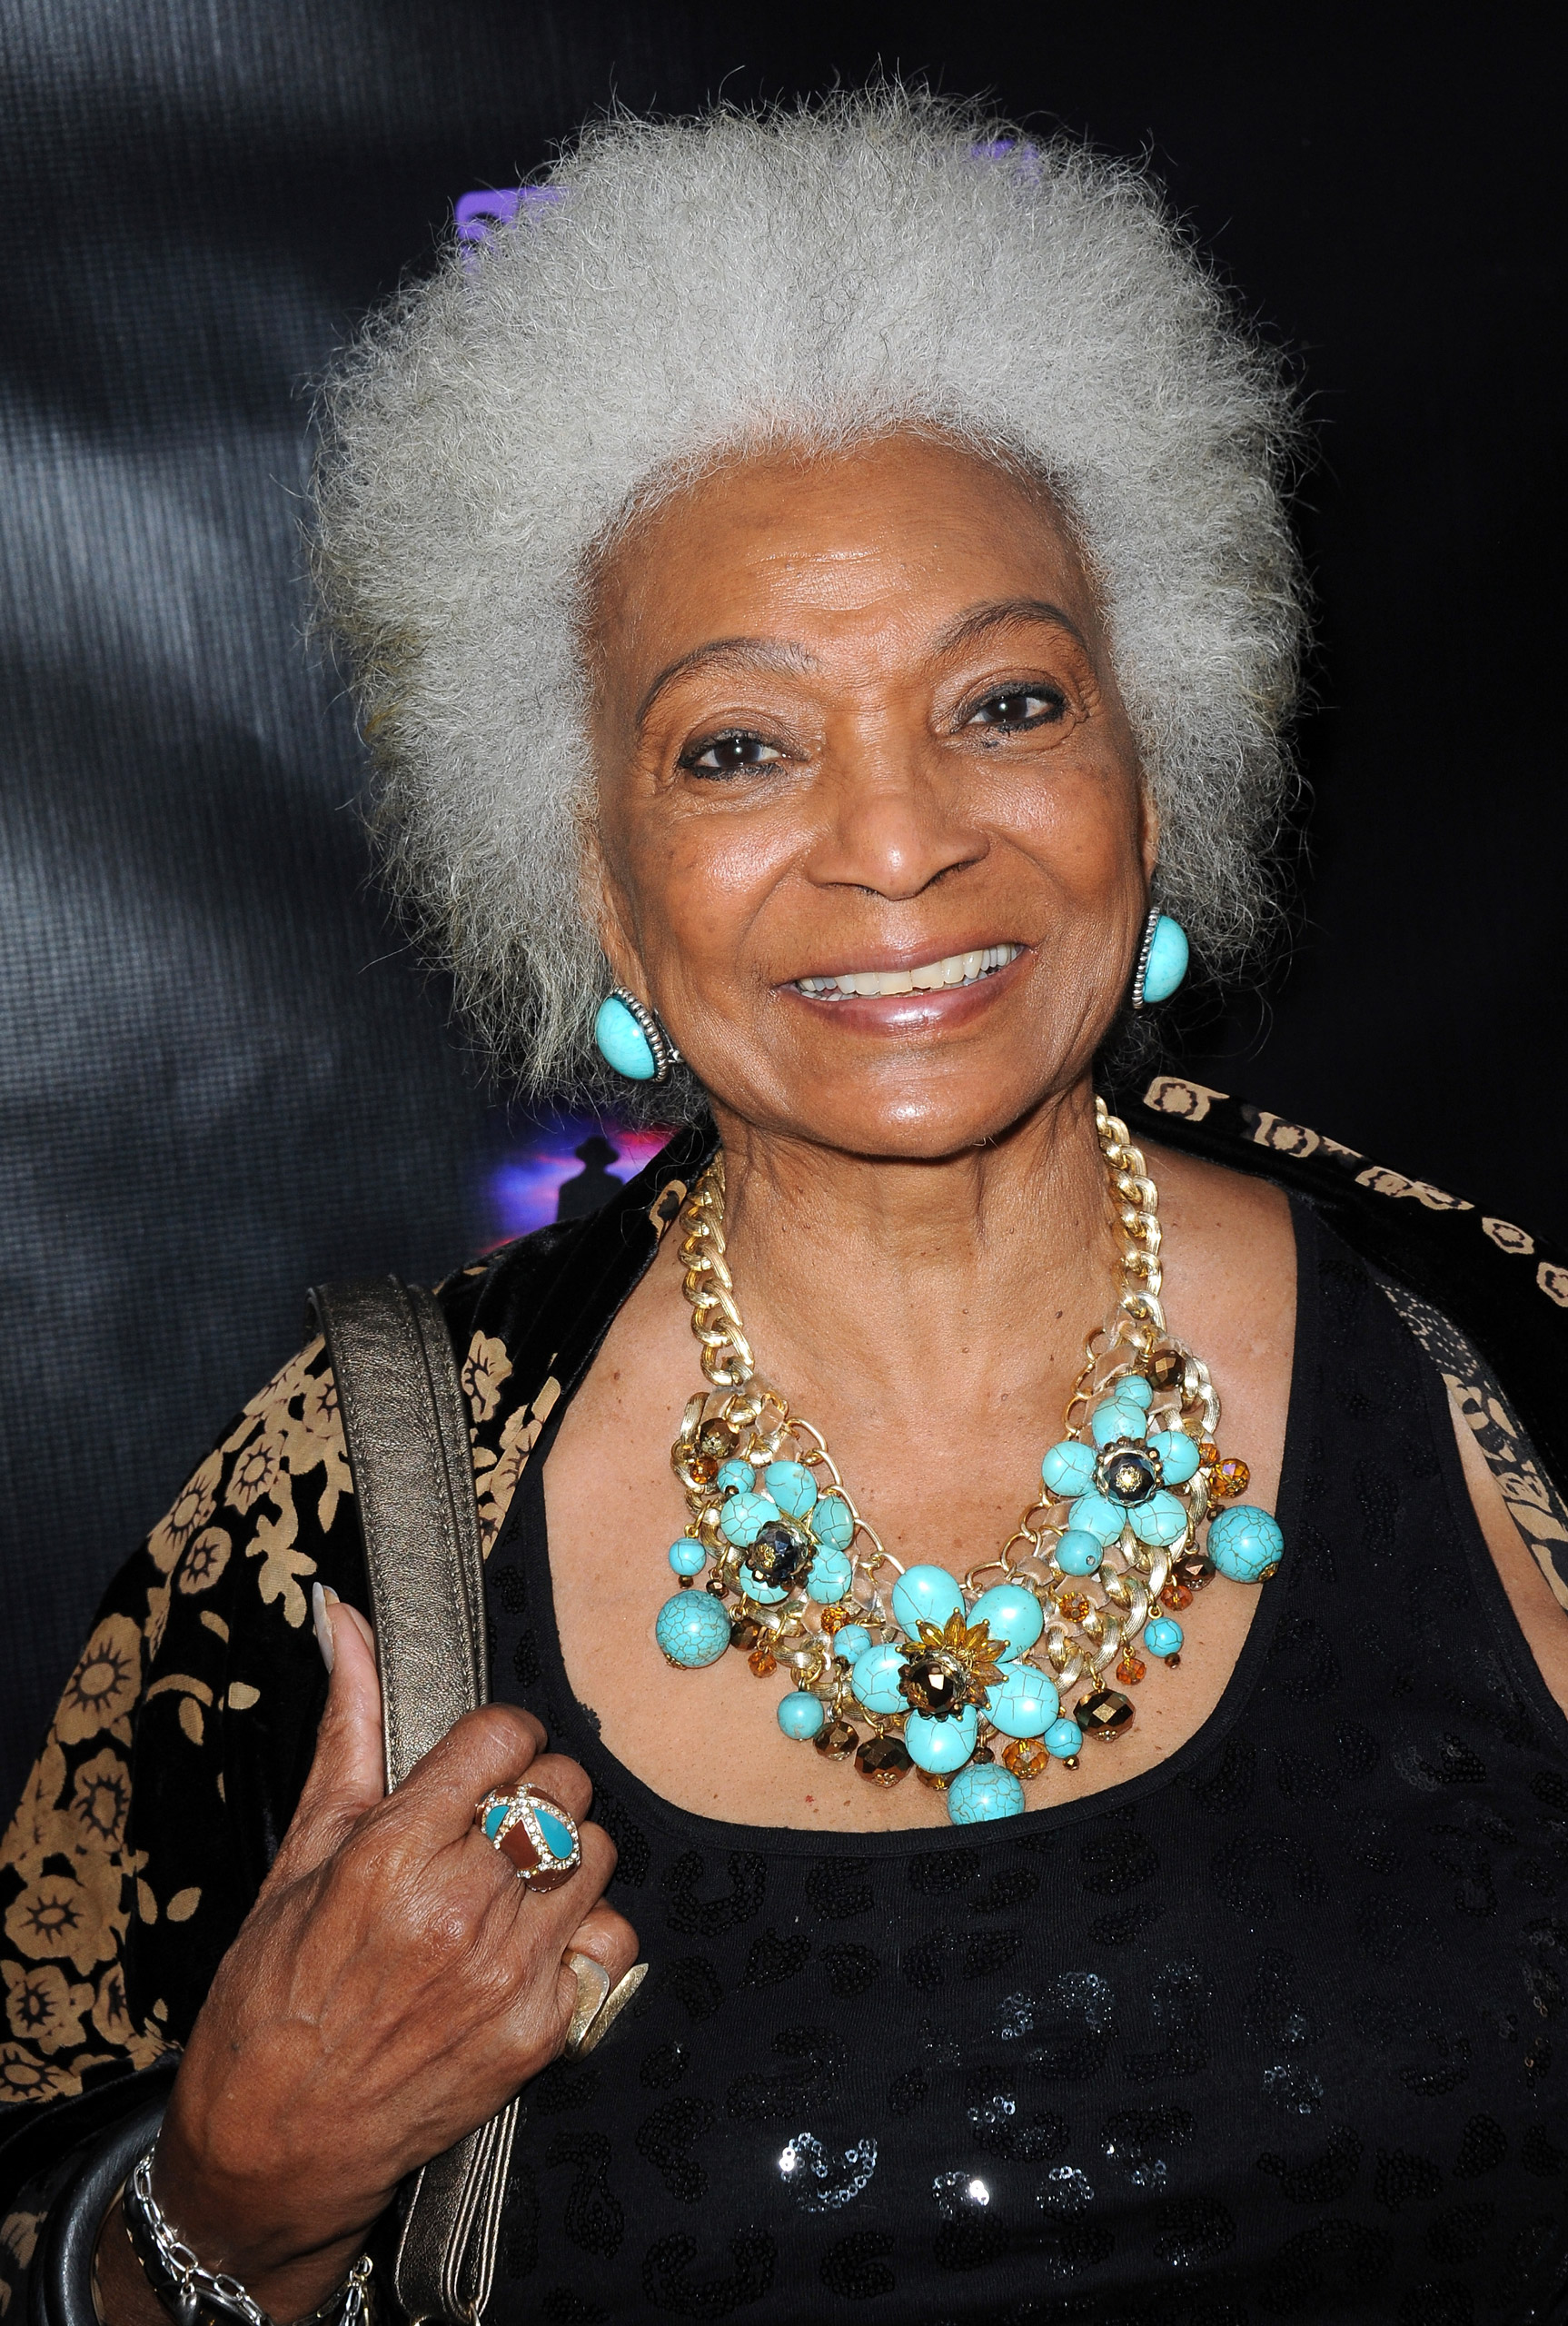 Actress Nichelle Nichols attends the Malcolm McDowell Series Of  Q&A Screenings for  Star Trek: Generations  in Glendale, Calif., on Apr. 15, 2014.